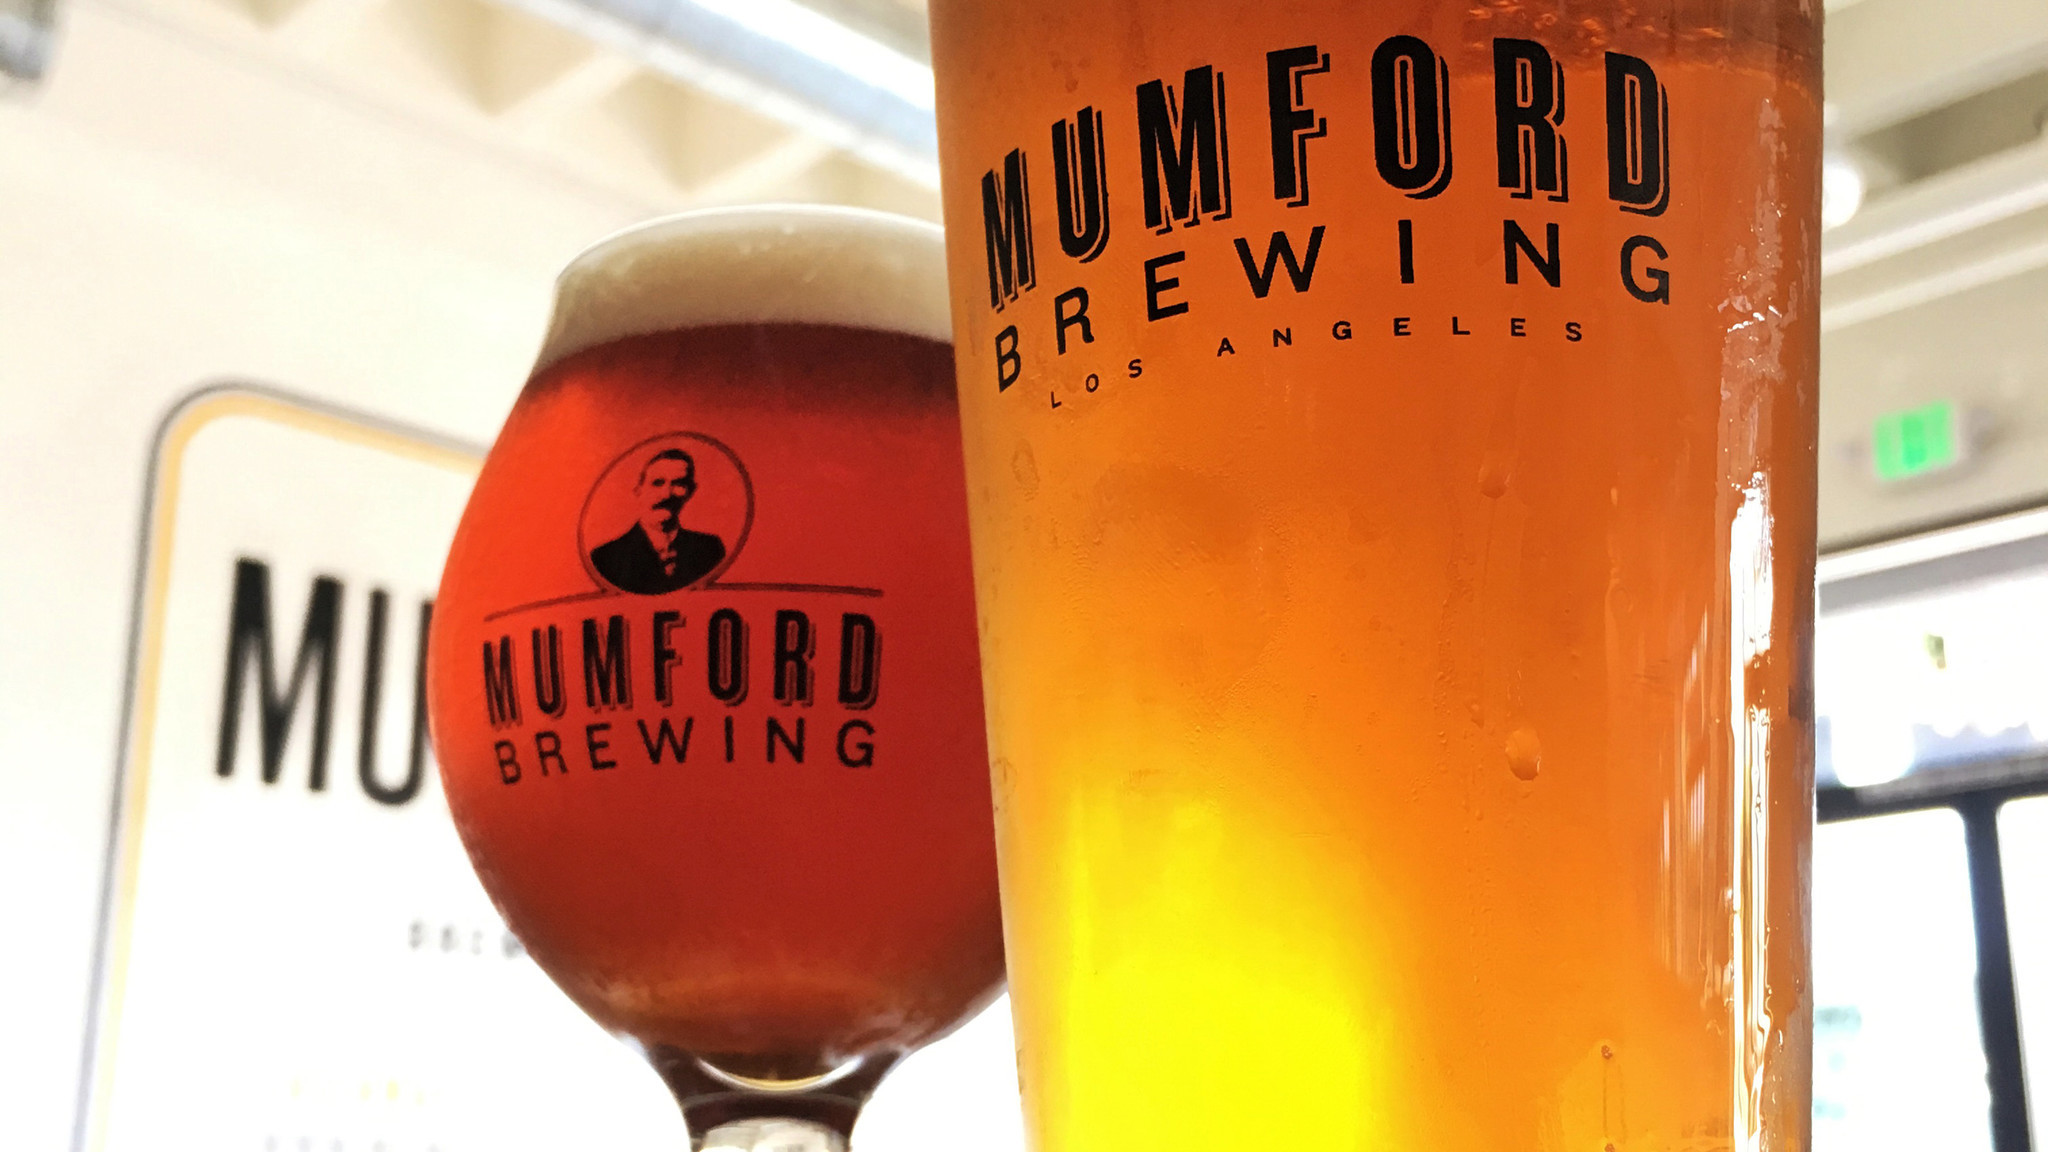 Mumford Brewing, half a mile west of the Arts District in downtown Los Angeles